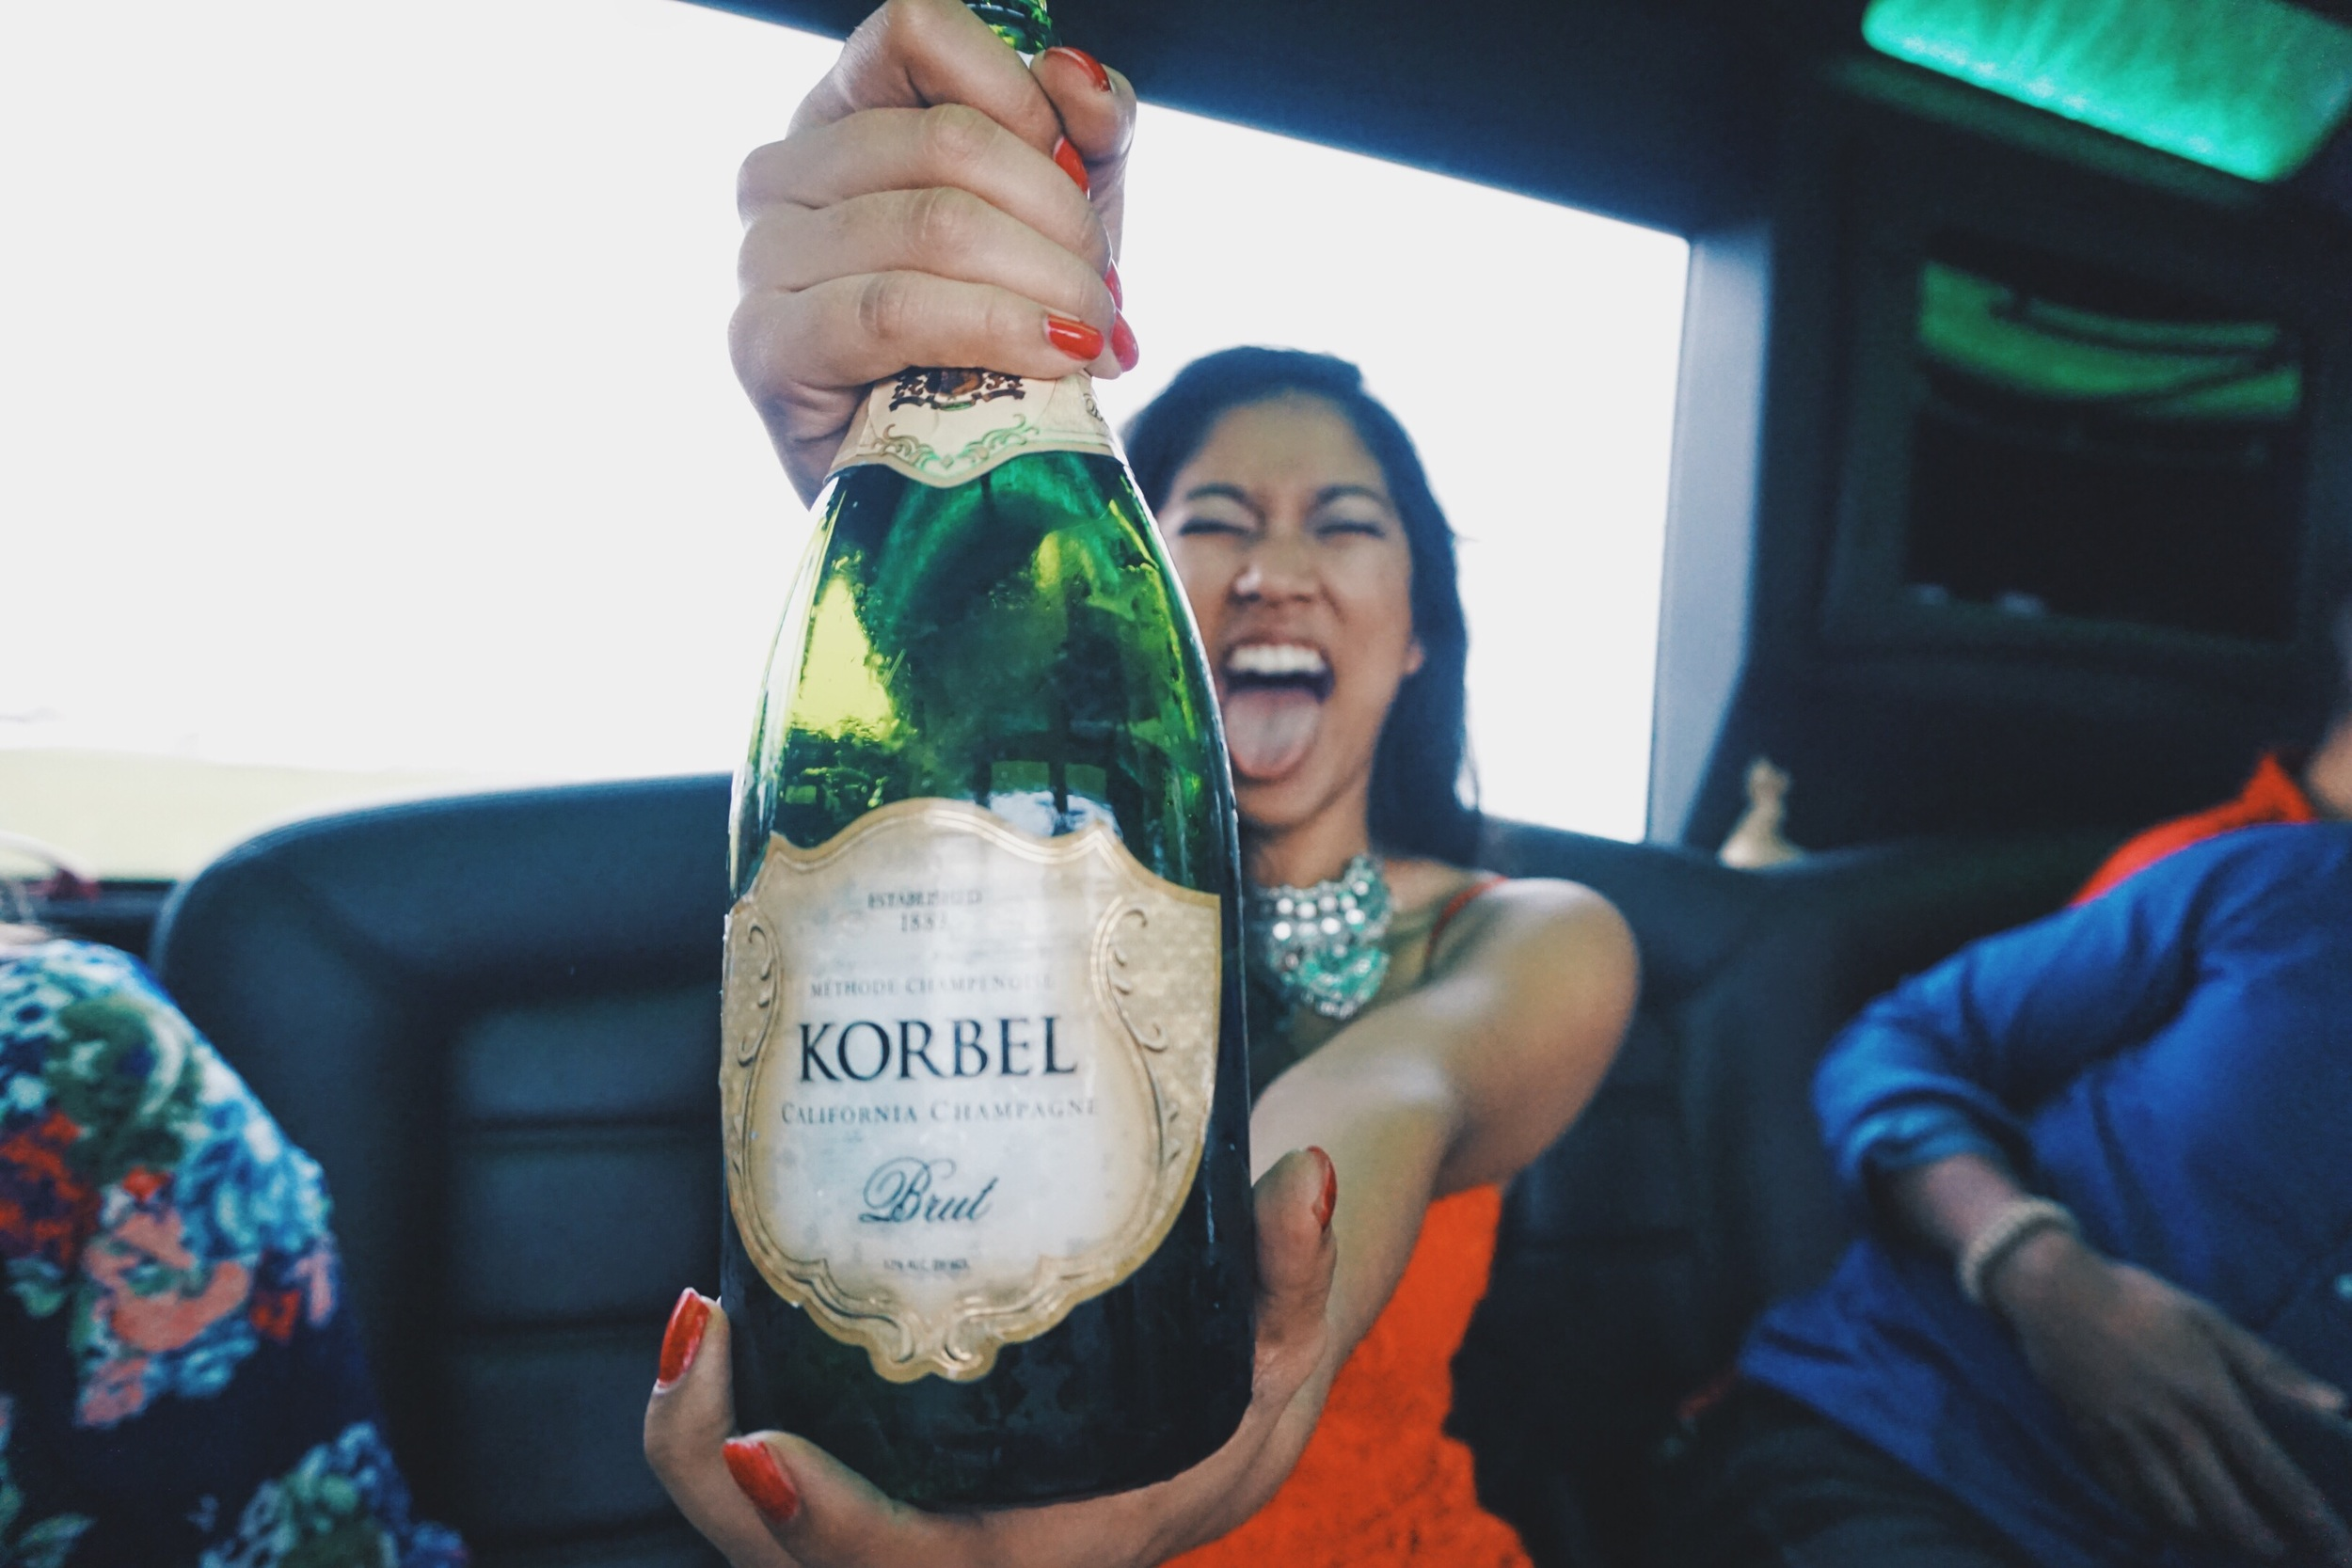 We poppin' champagne like we won a championship game! She had those mimosas ready for us bright and early!